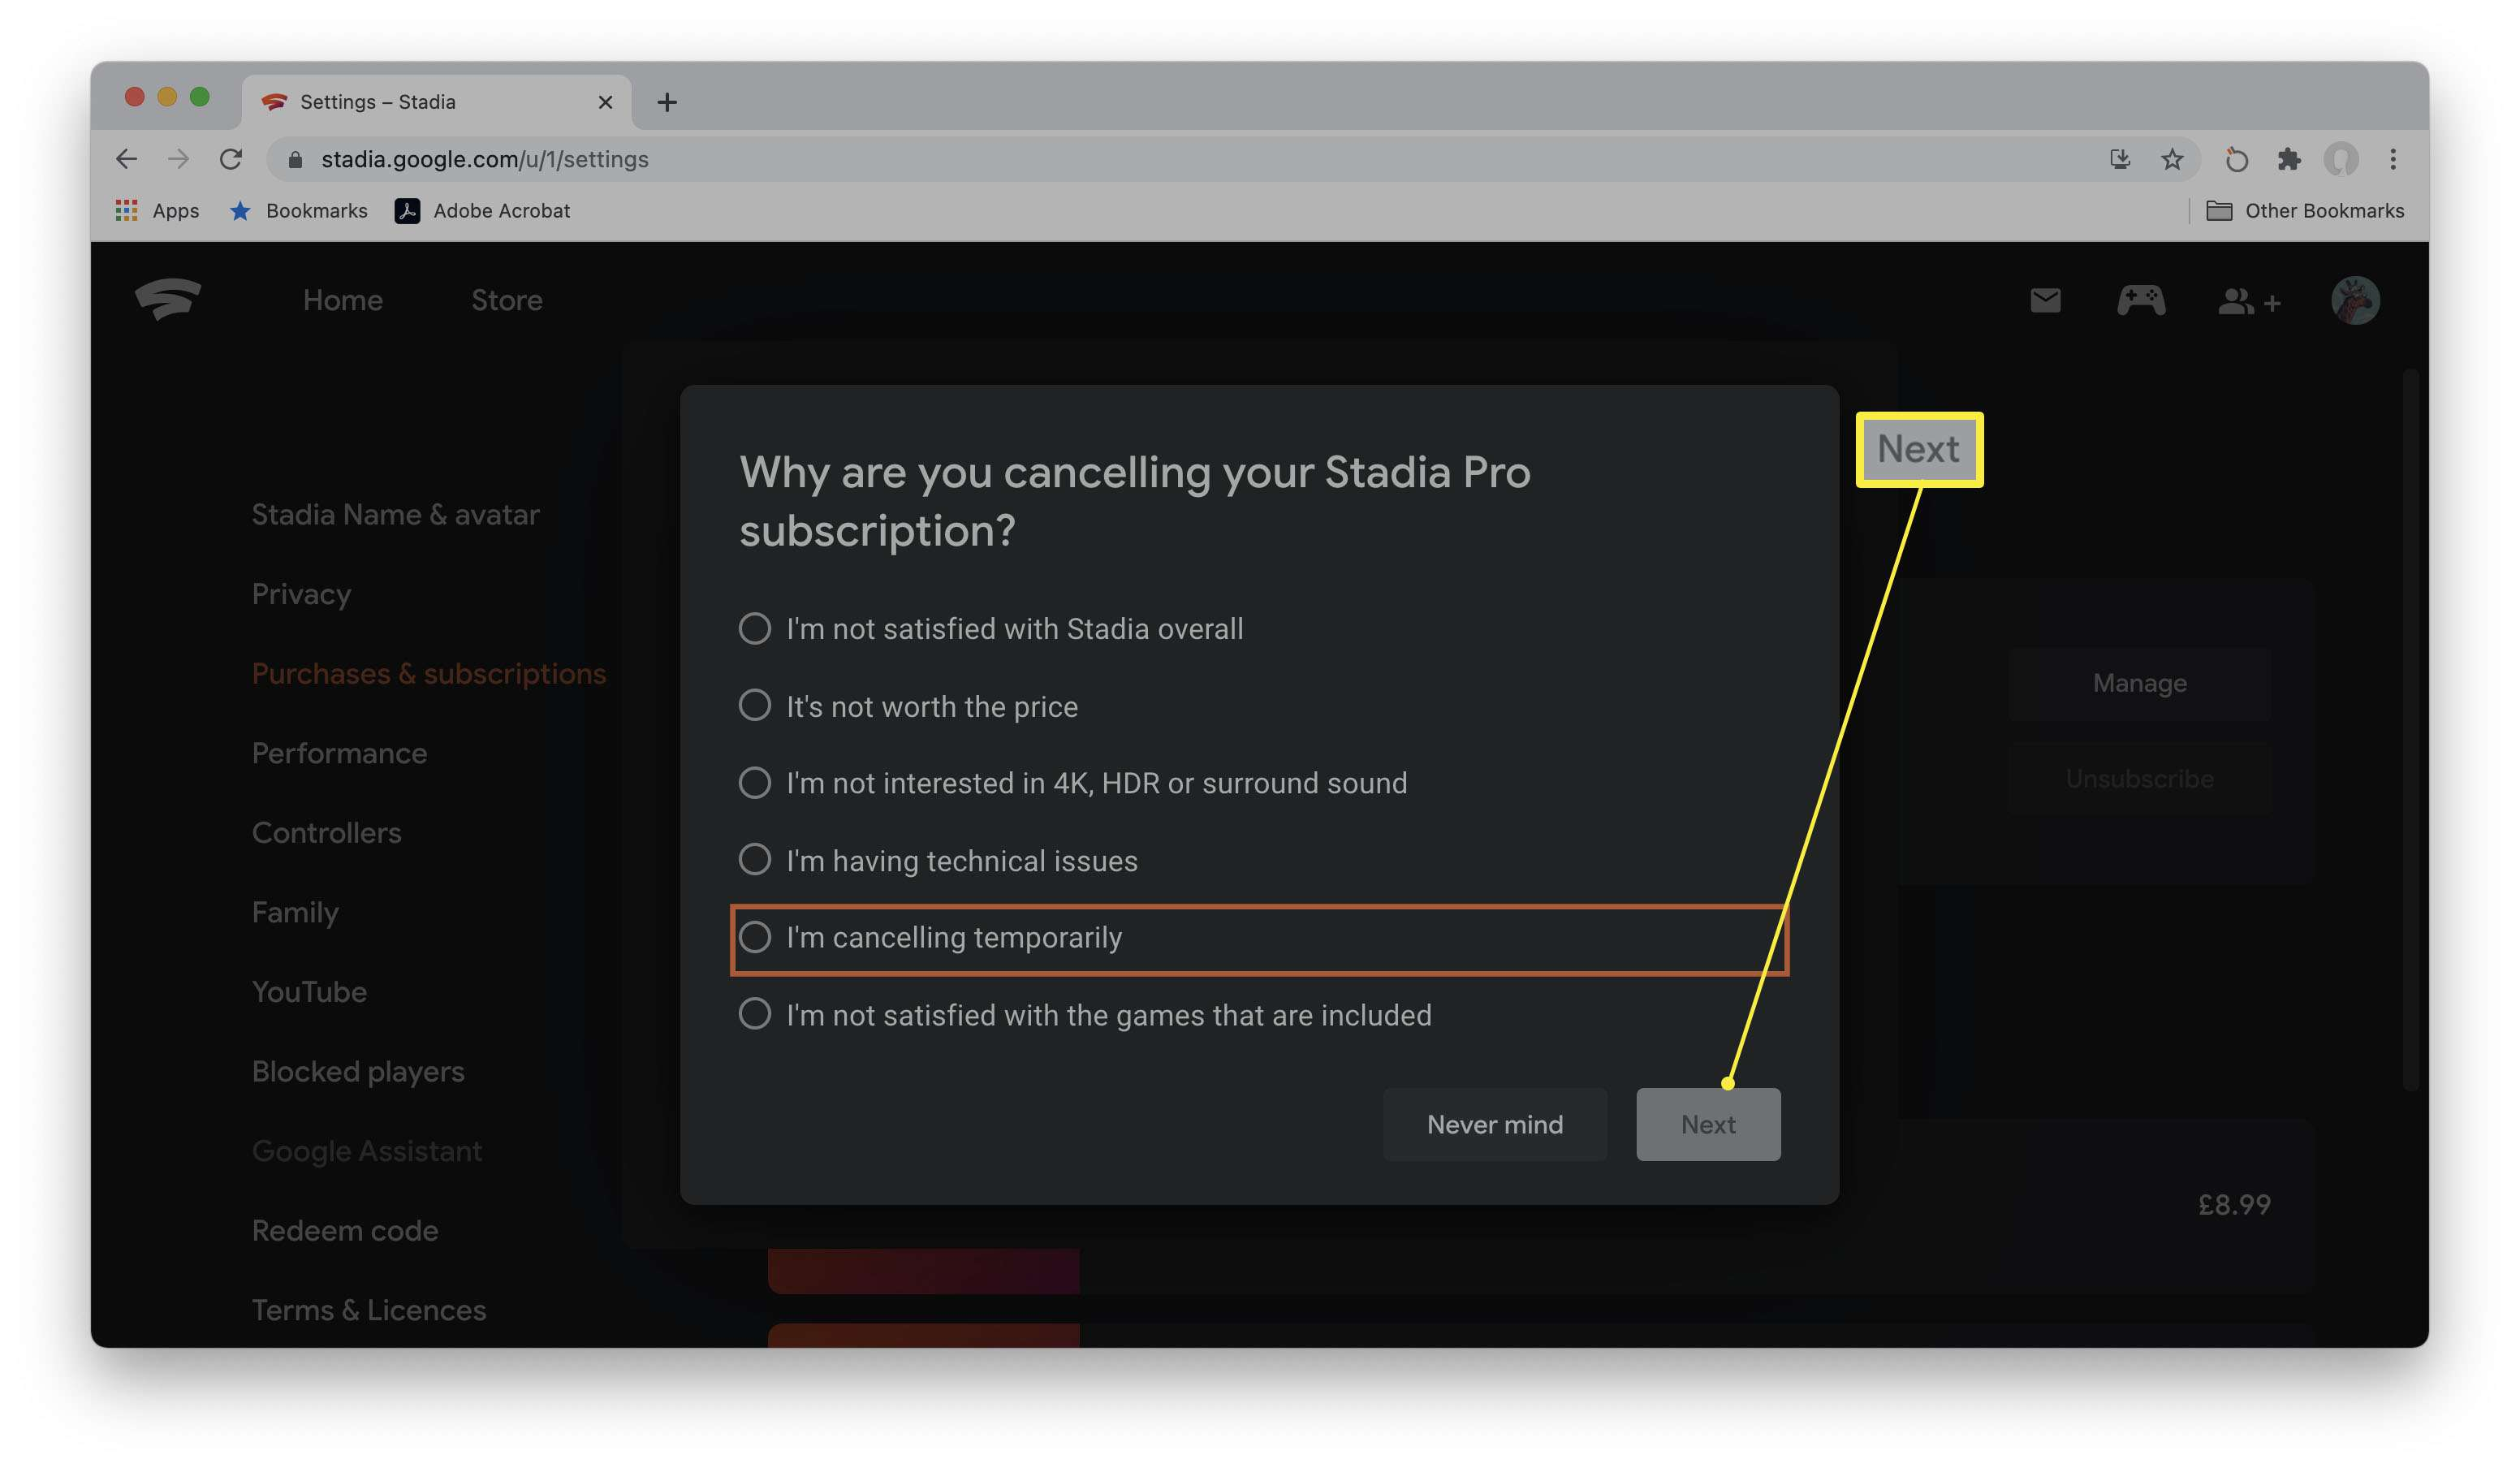 Google Stadia unsubscribe page with reasons to cancel Stadia Pro highlighted